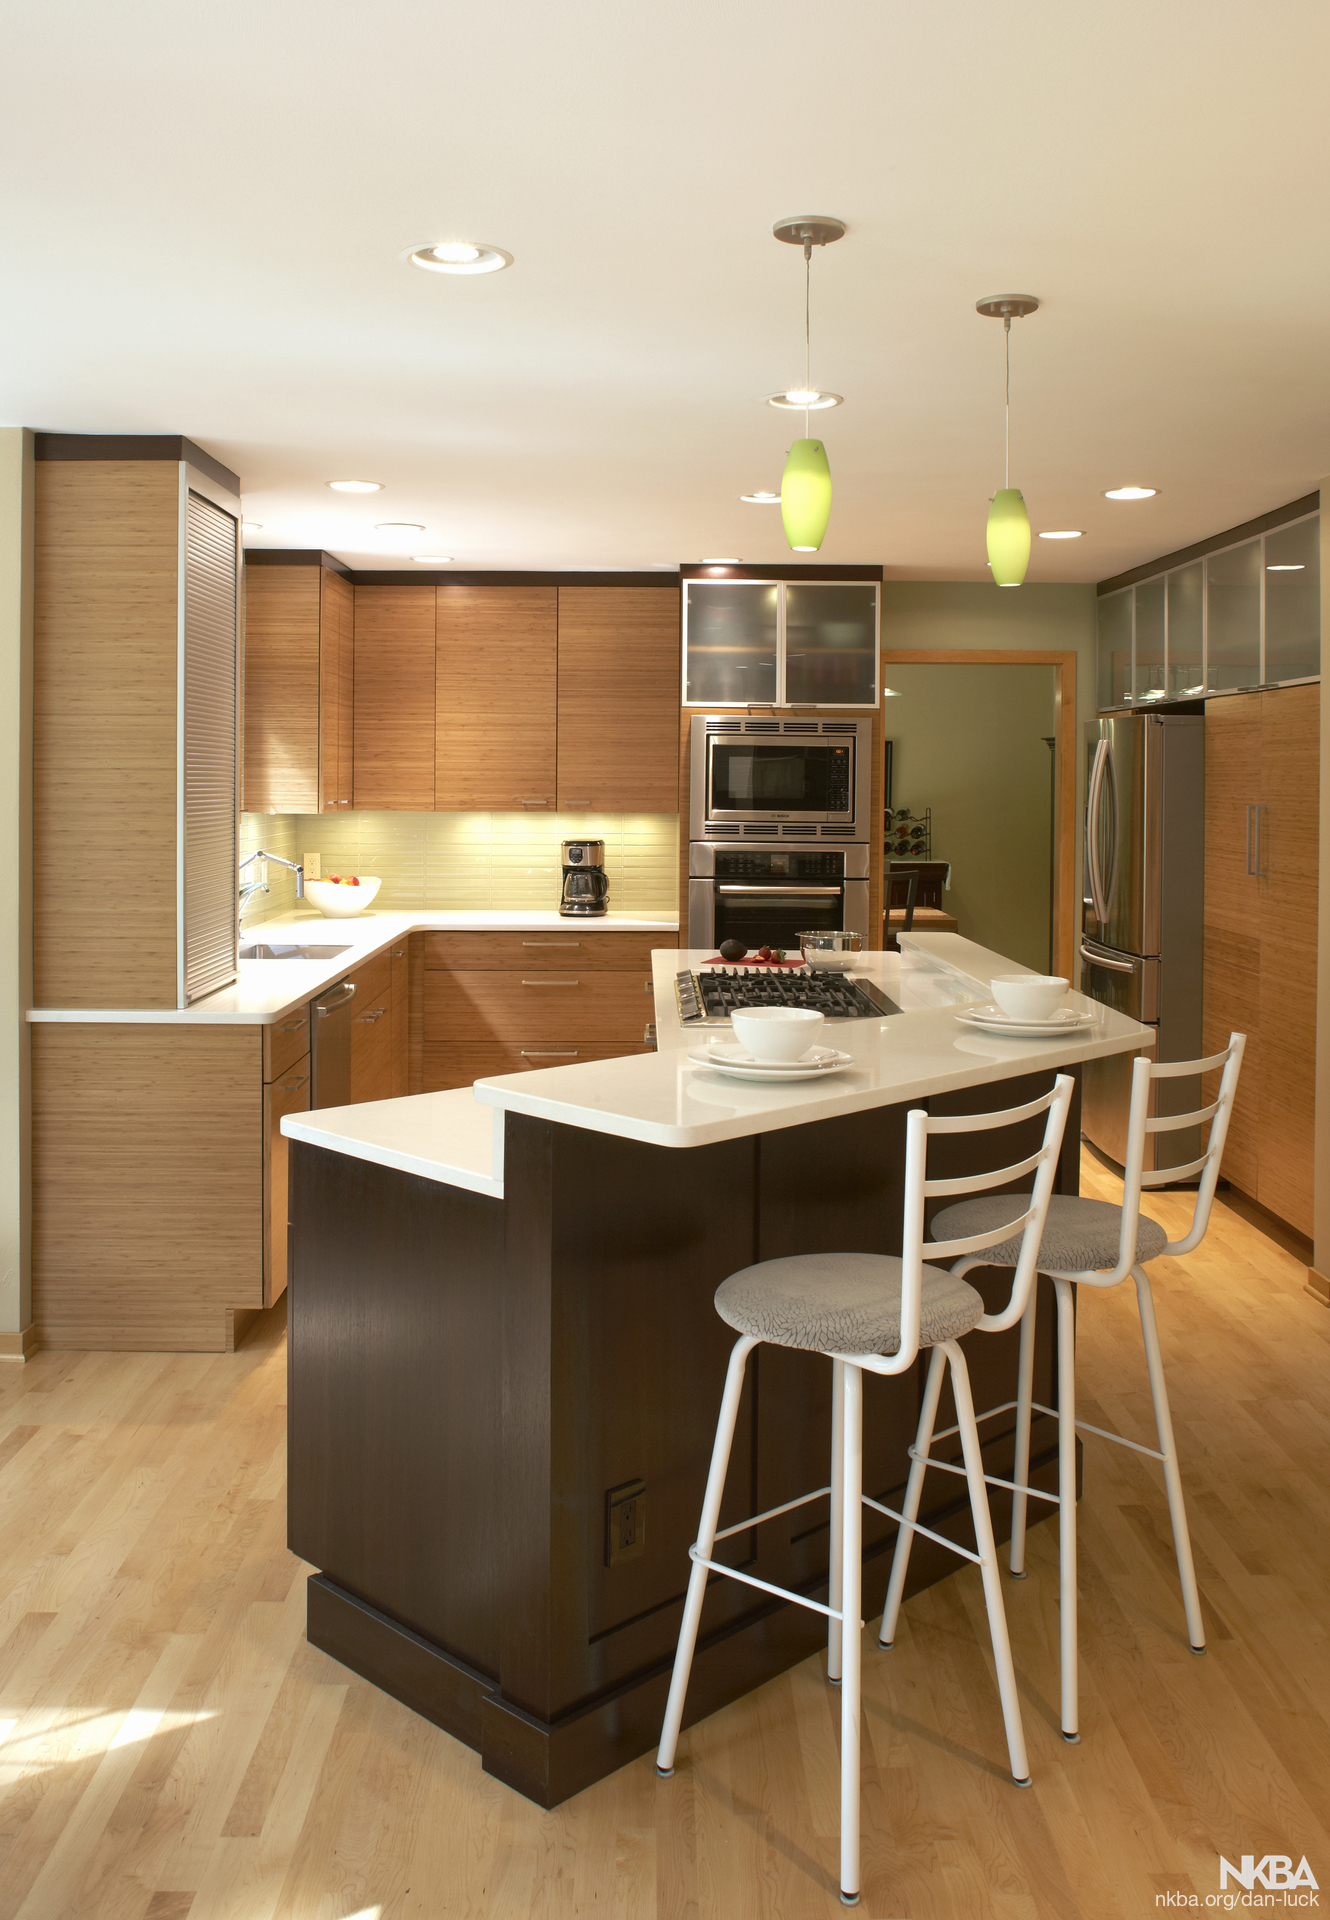 Bamboo And Lyptus Cabinetry   NKBA